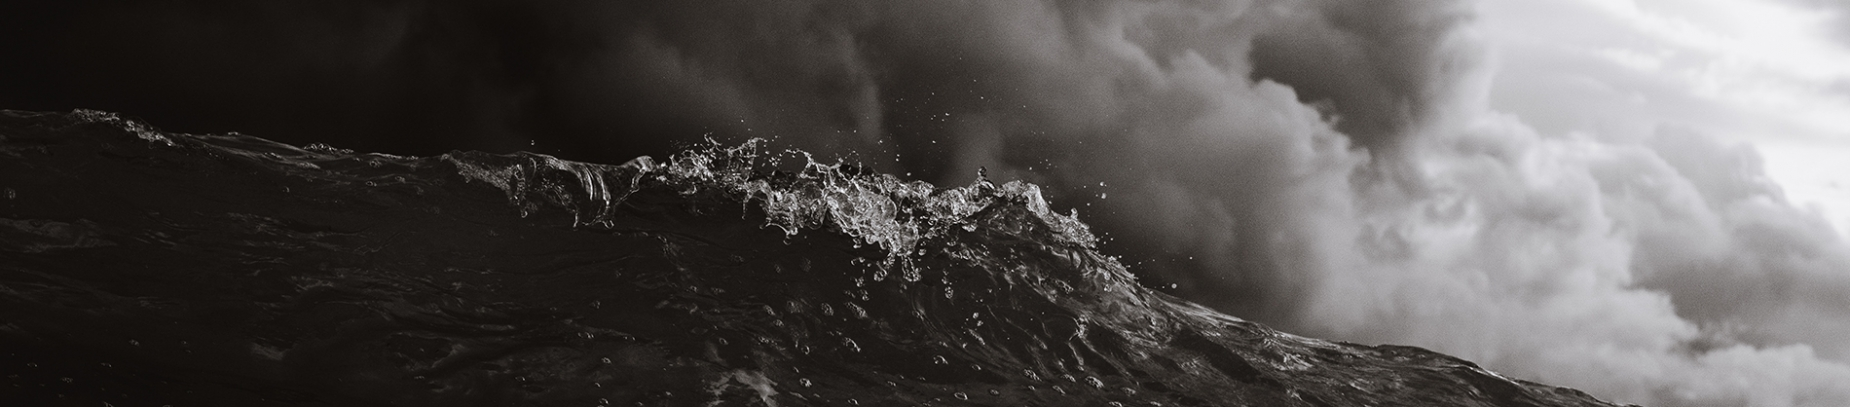 Black and white photo of waves crashing